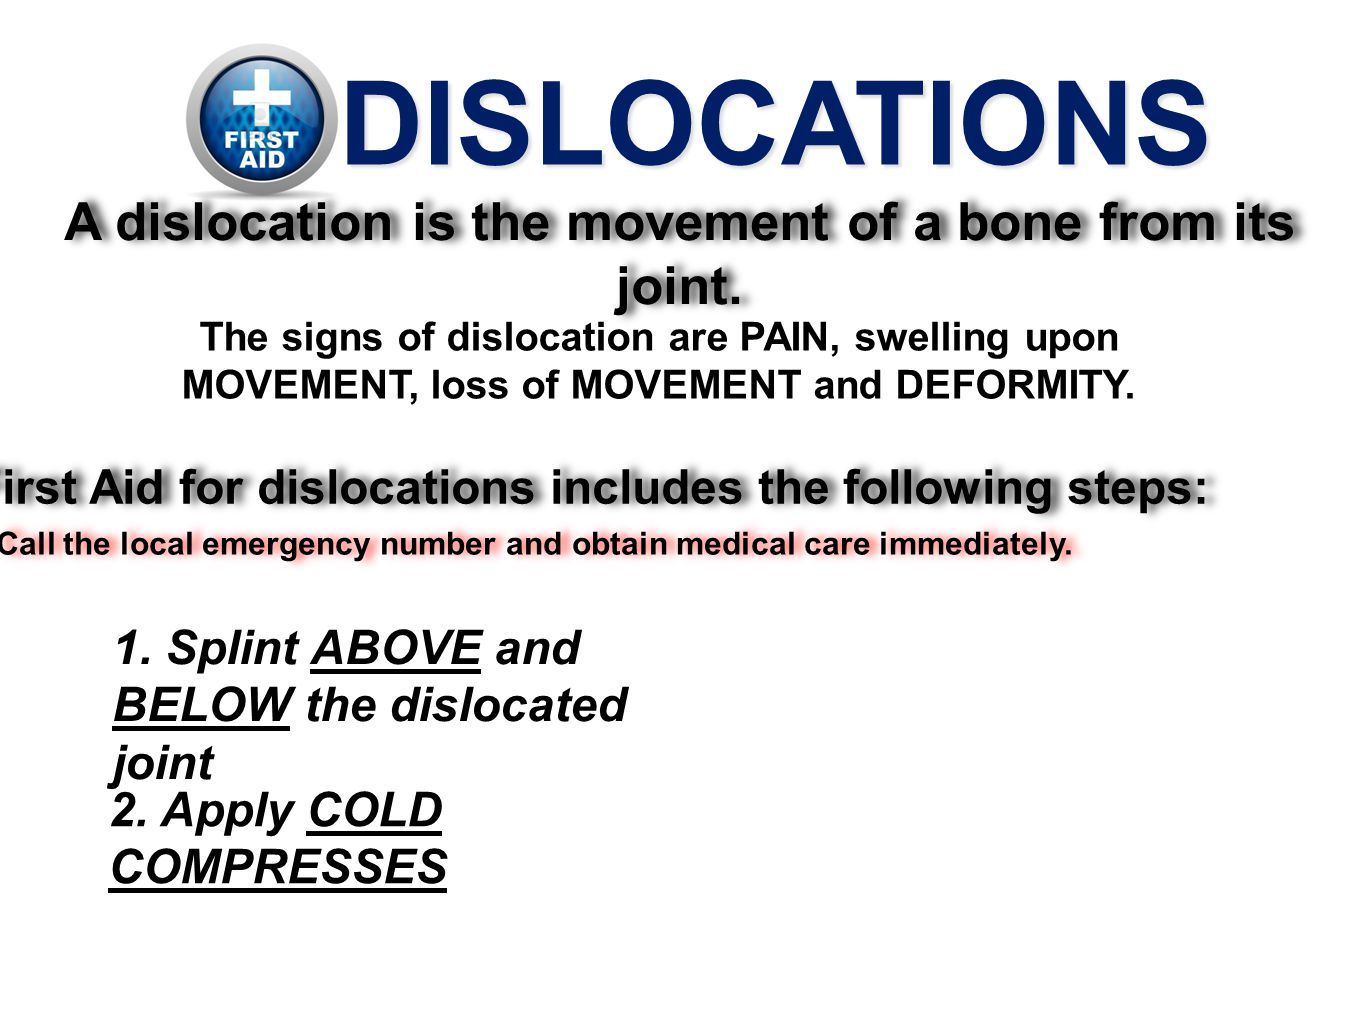 DISLOCATIONS A dislocation is the movement of a bone from its joint.